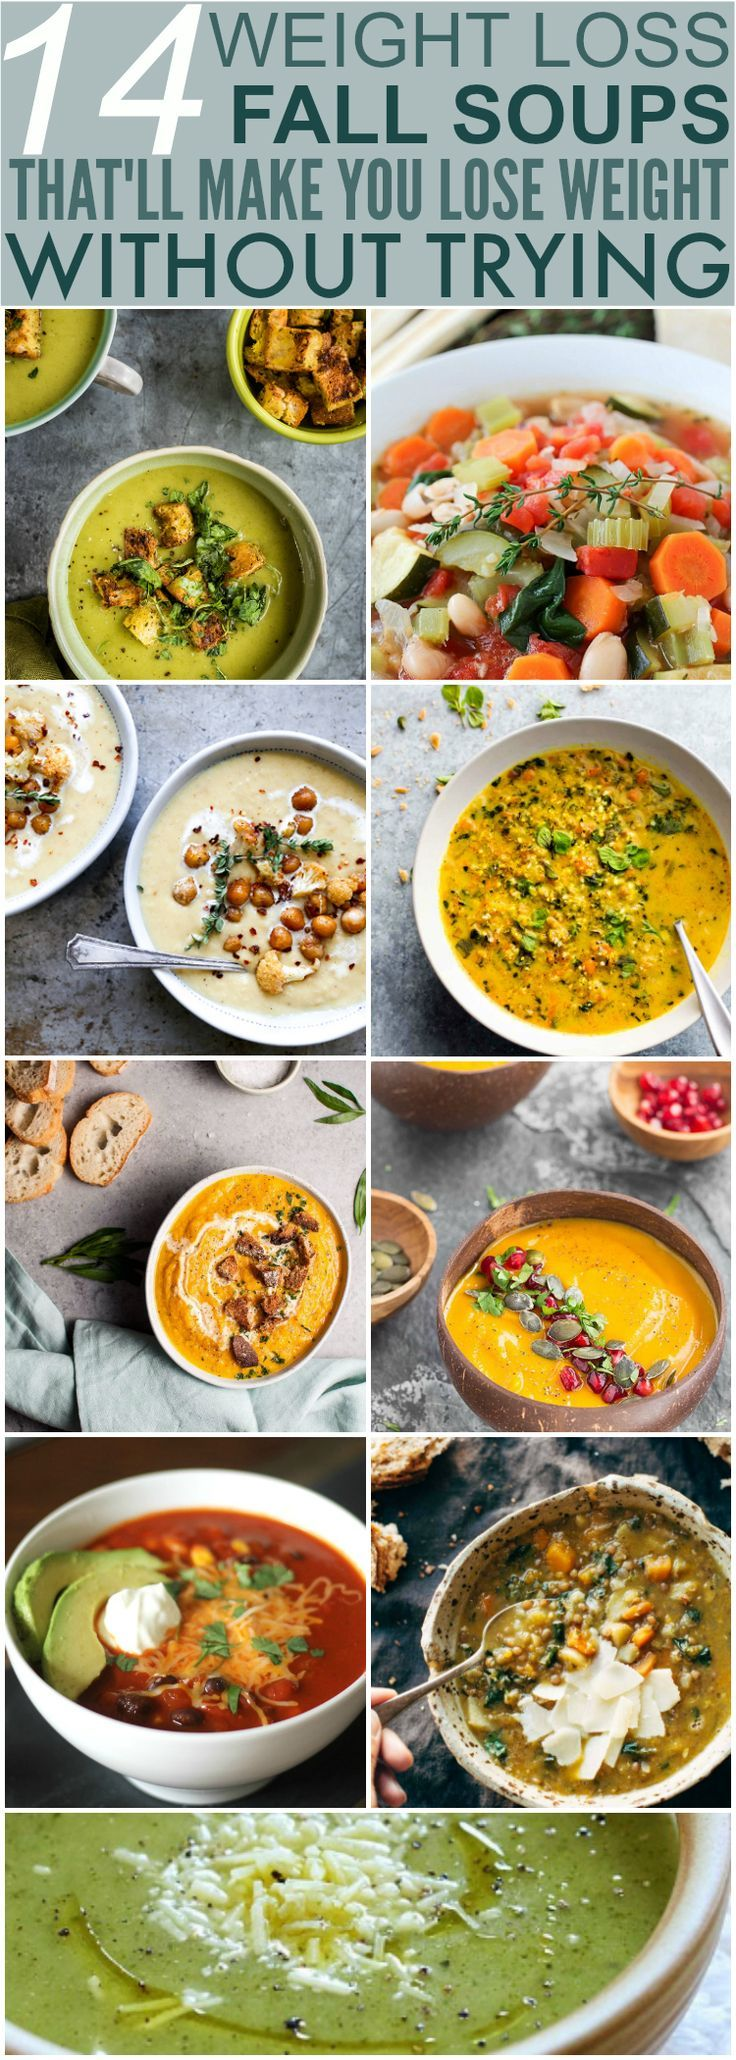 These 14 Soups Are Perfect For Fall Weather! I love that they are healthy and satisfying without the normal guilt associated with yummy food!